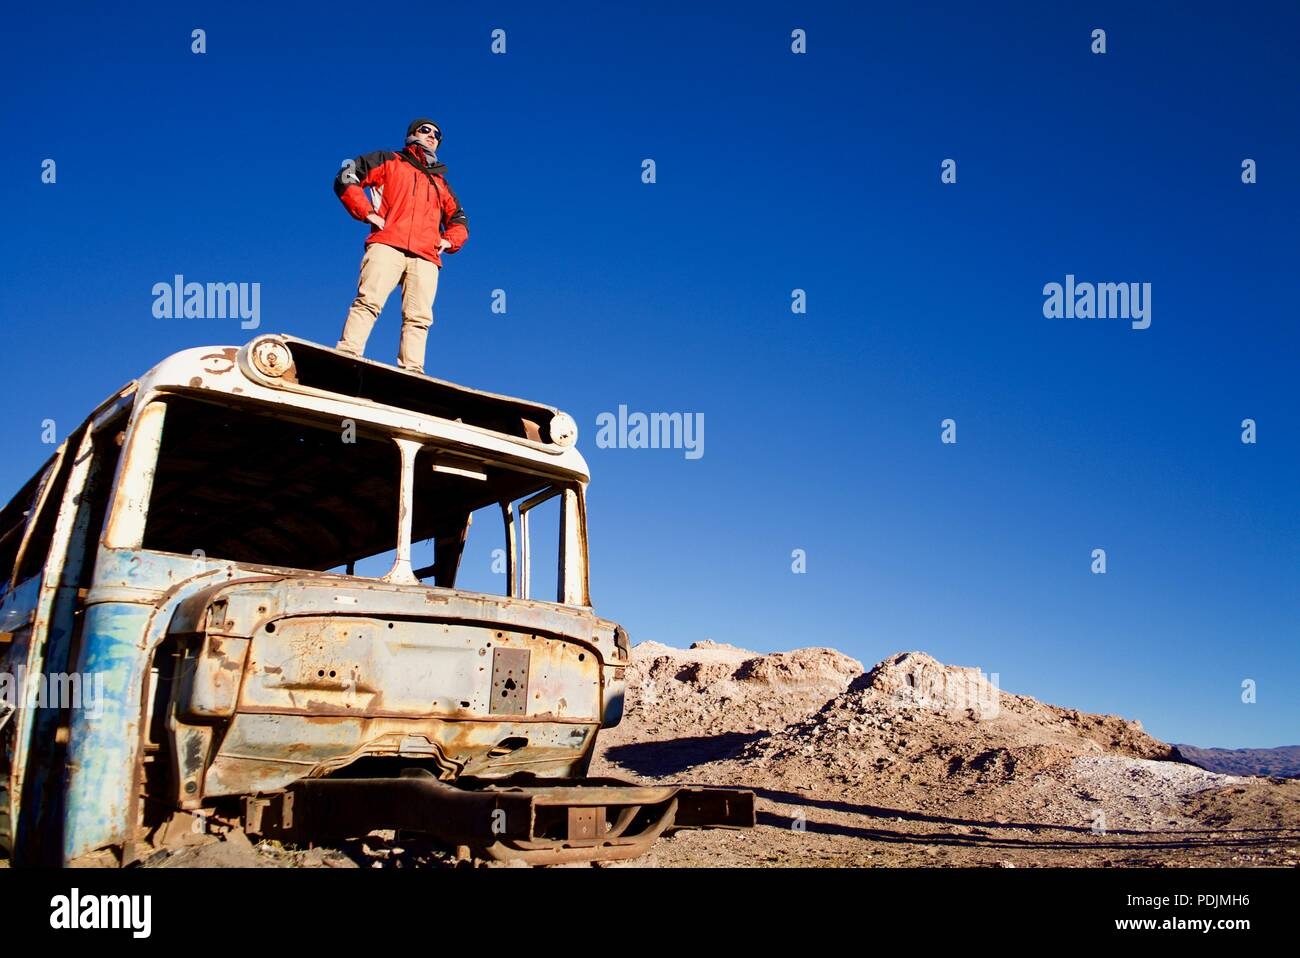 Ready to face new challenges. Taken on an abandoned bus in the Atacama desert very early in the morning - Stock Image